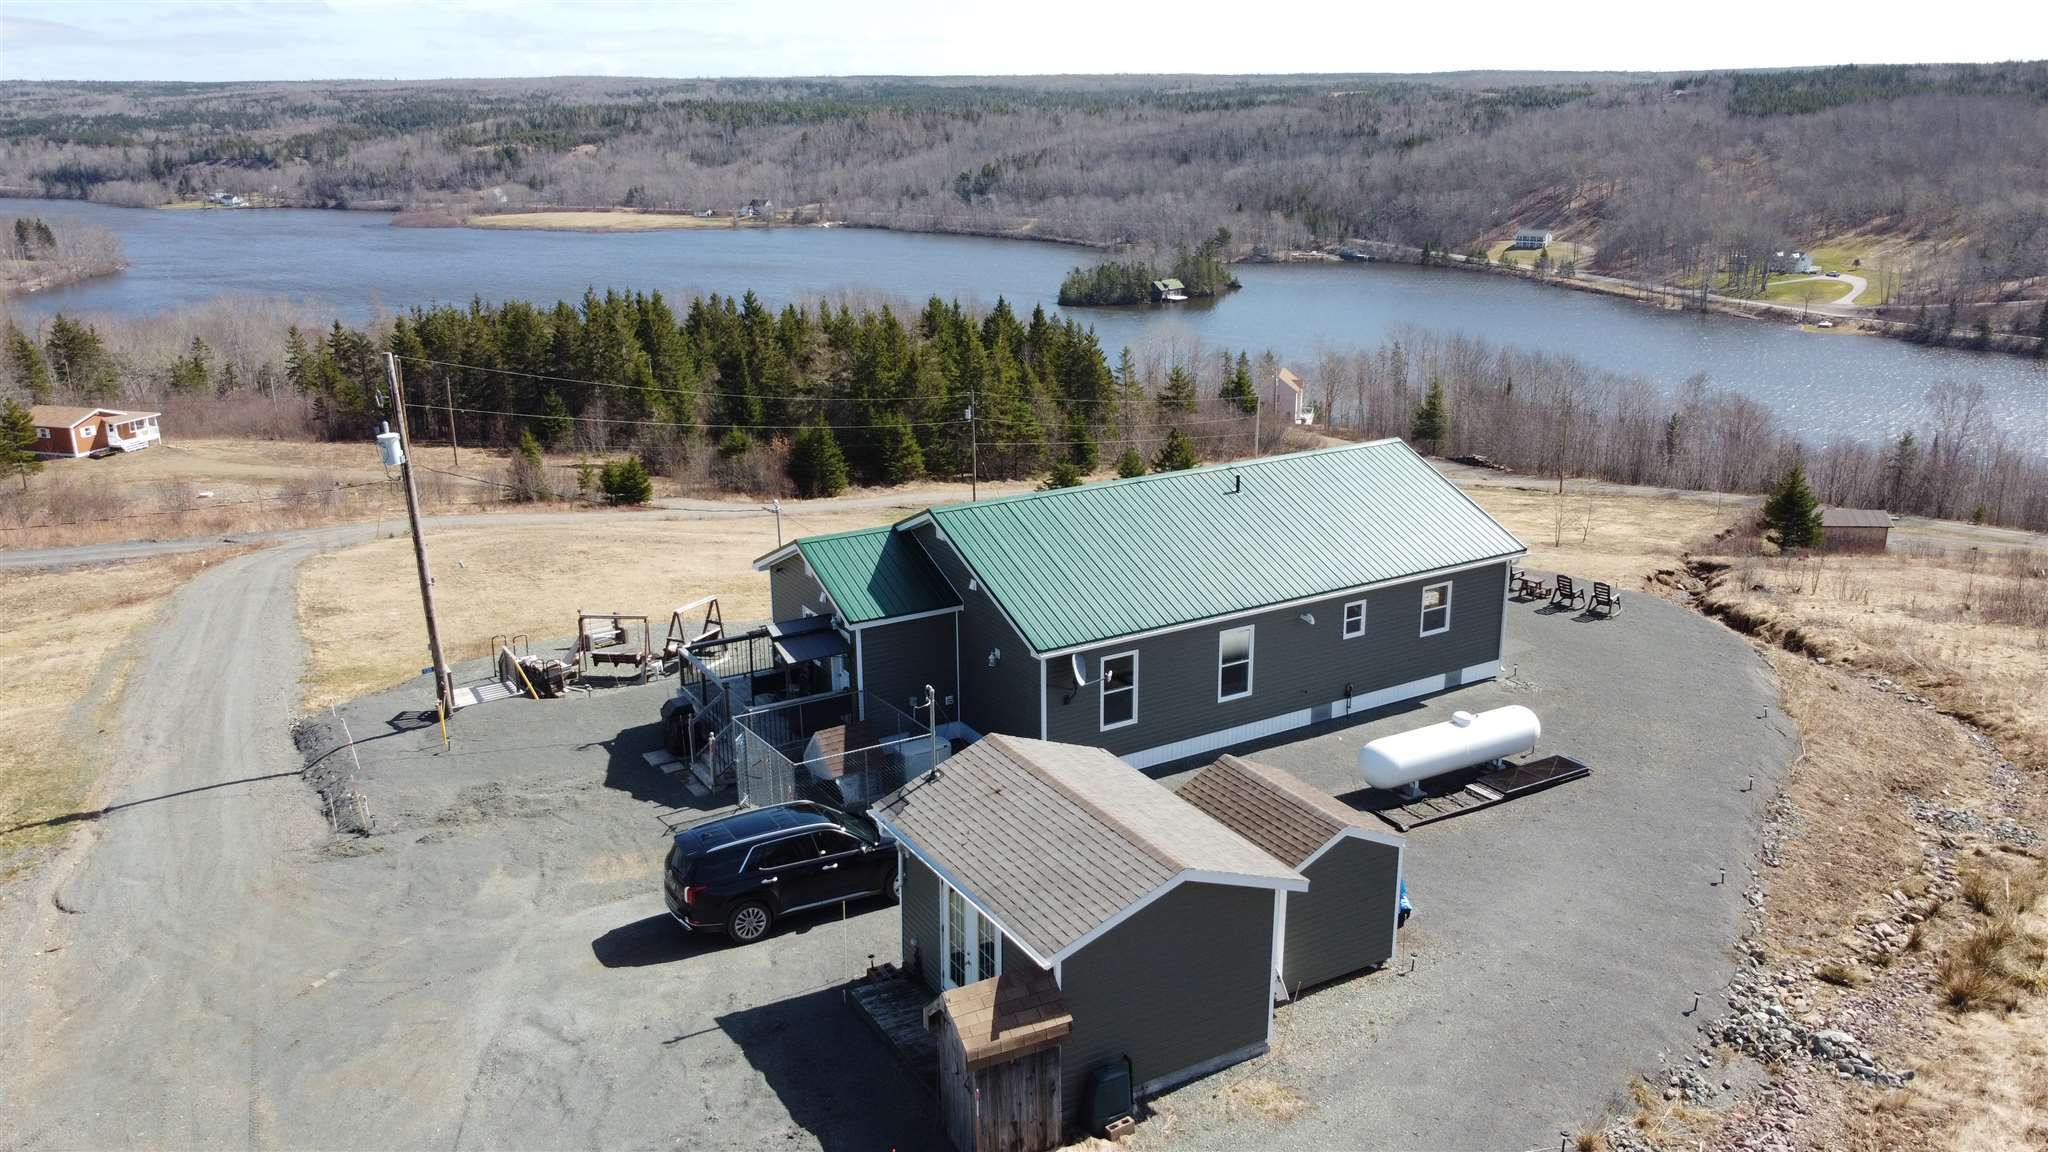 Main Photo: 135 Lakeview Lane in Lochaber: 302-Antigonish County Residential for sale (Highland Region)  : MLS®# 202107984